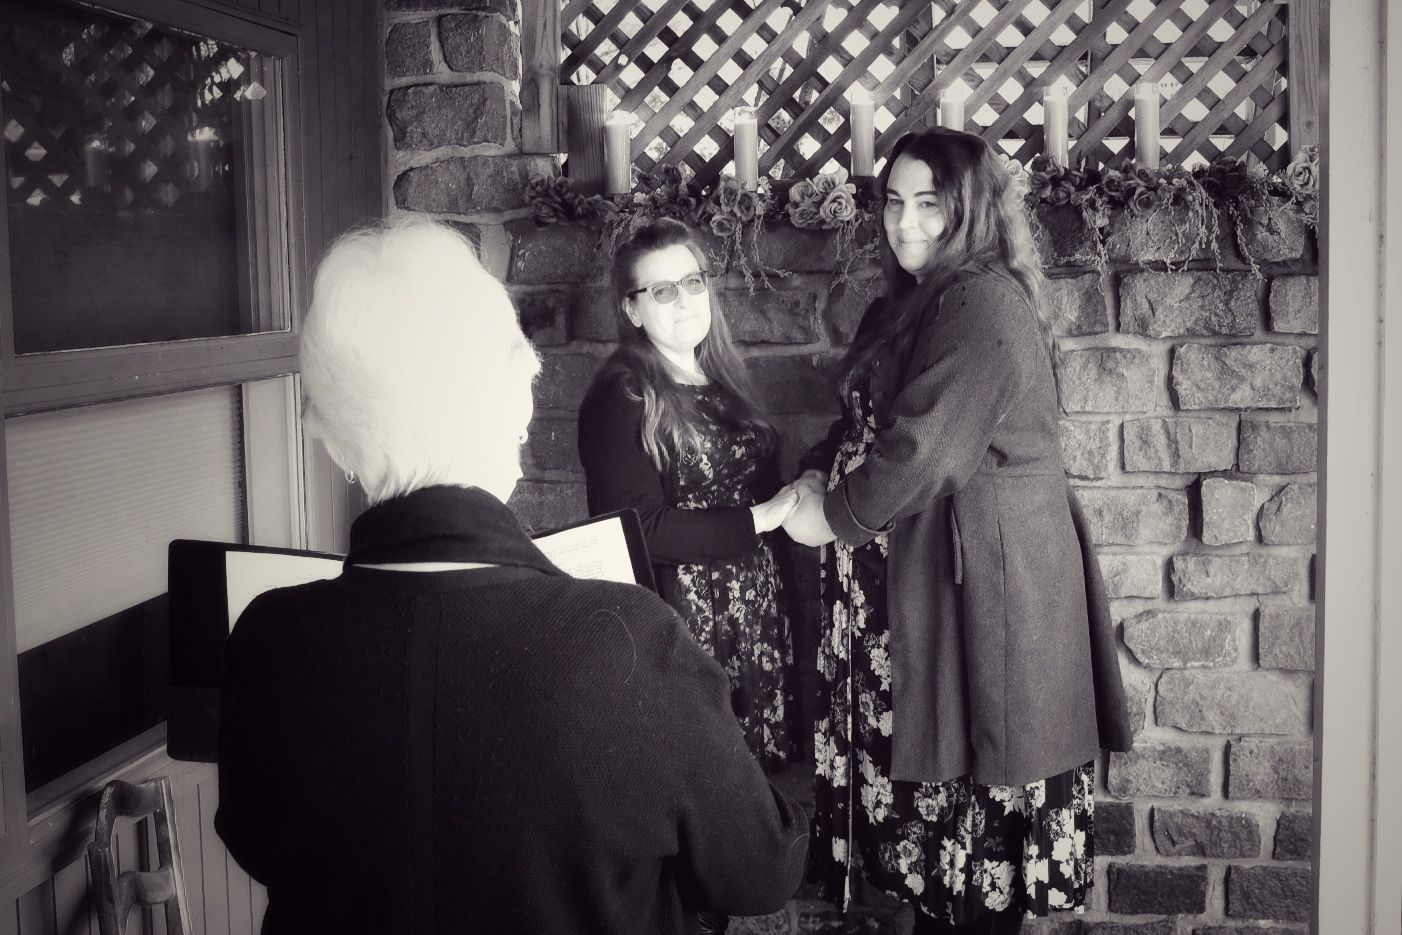 Holly and Jina holding hands and looking at the officiant.